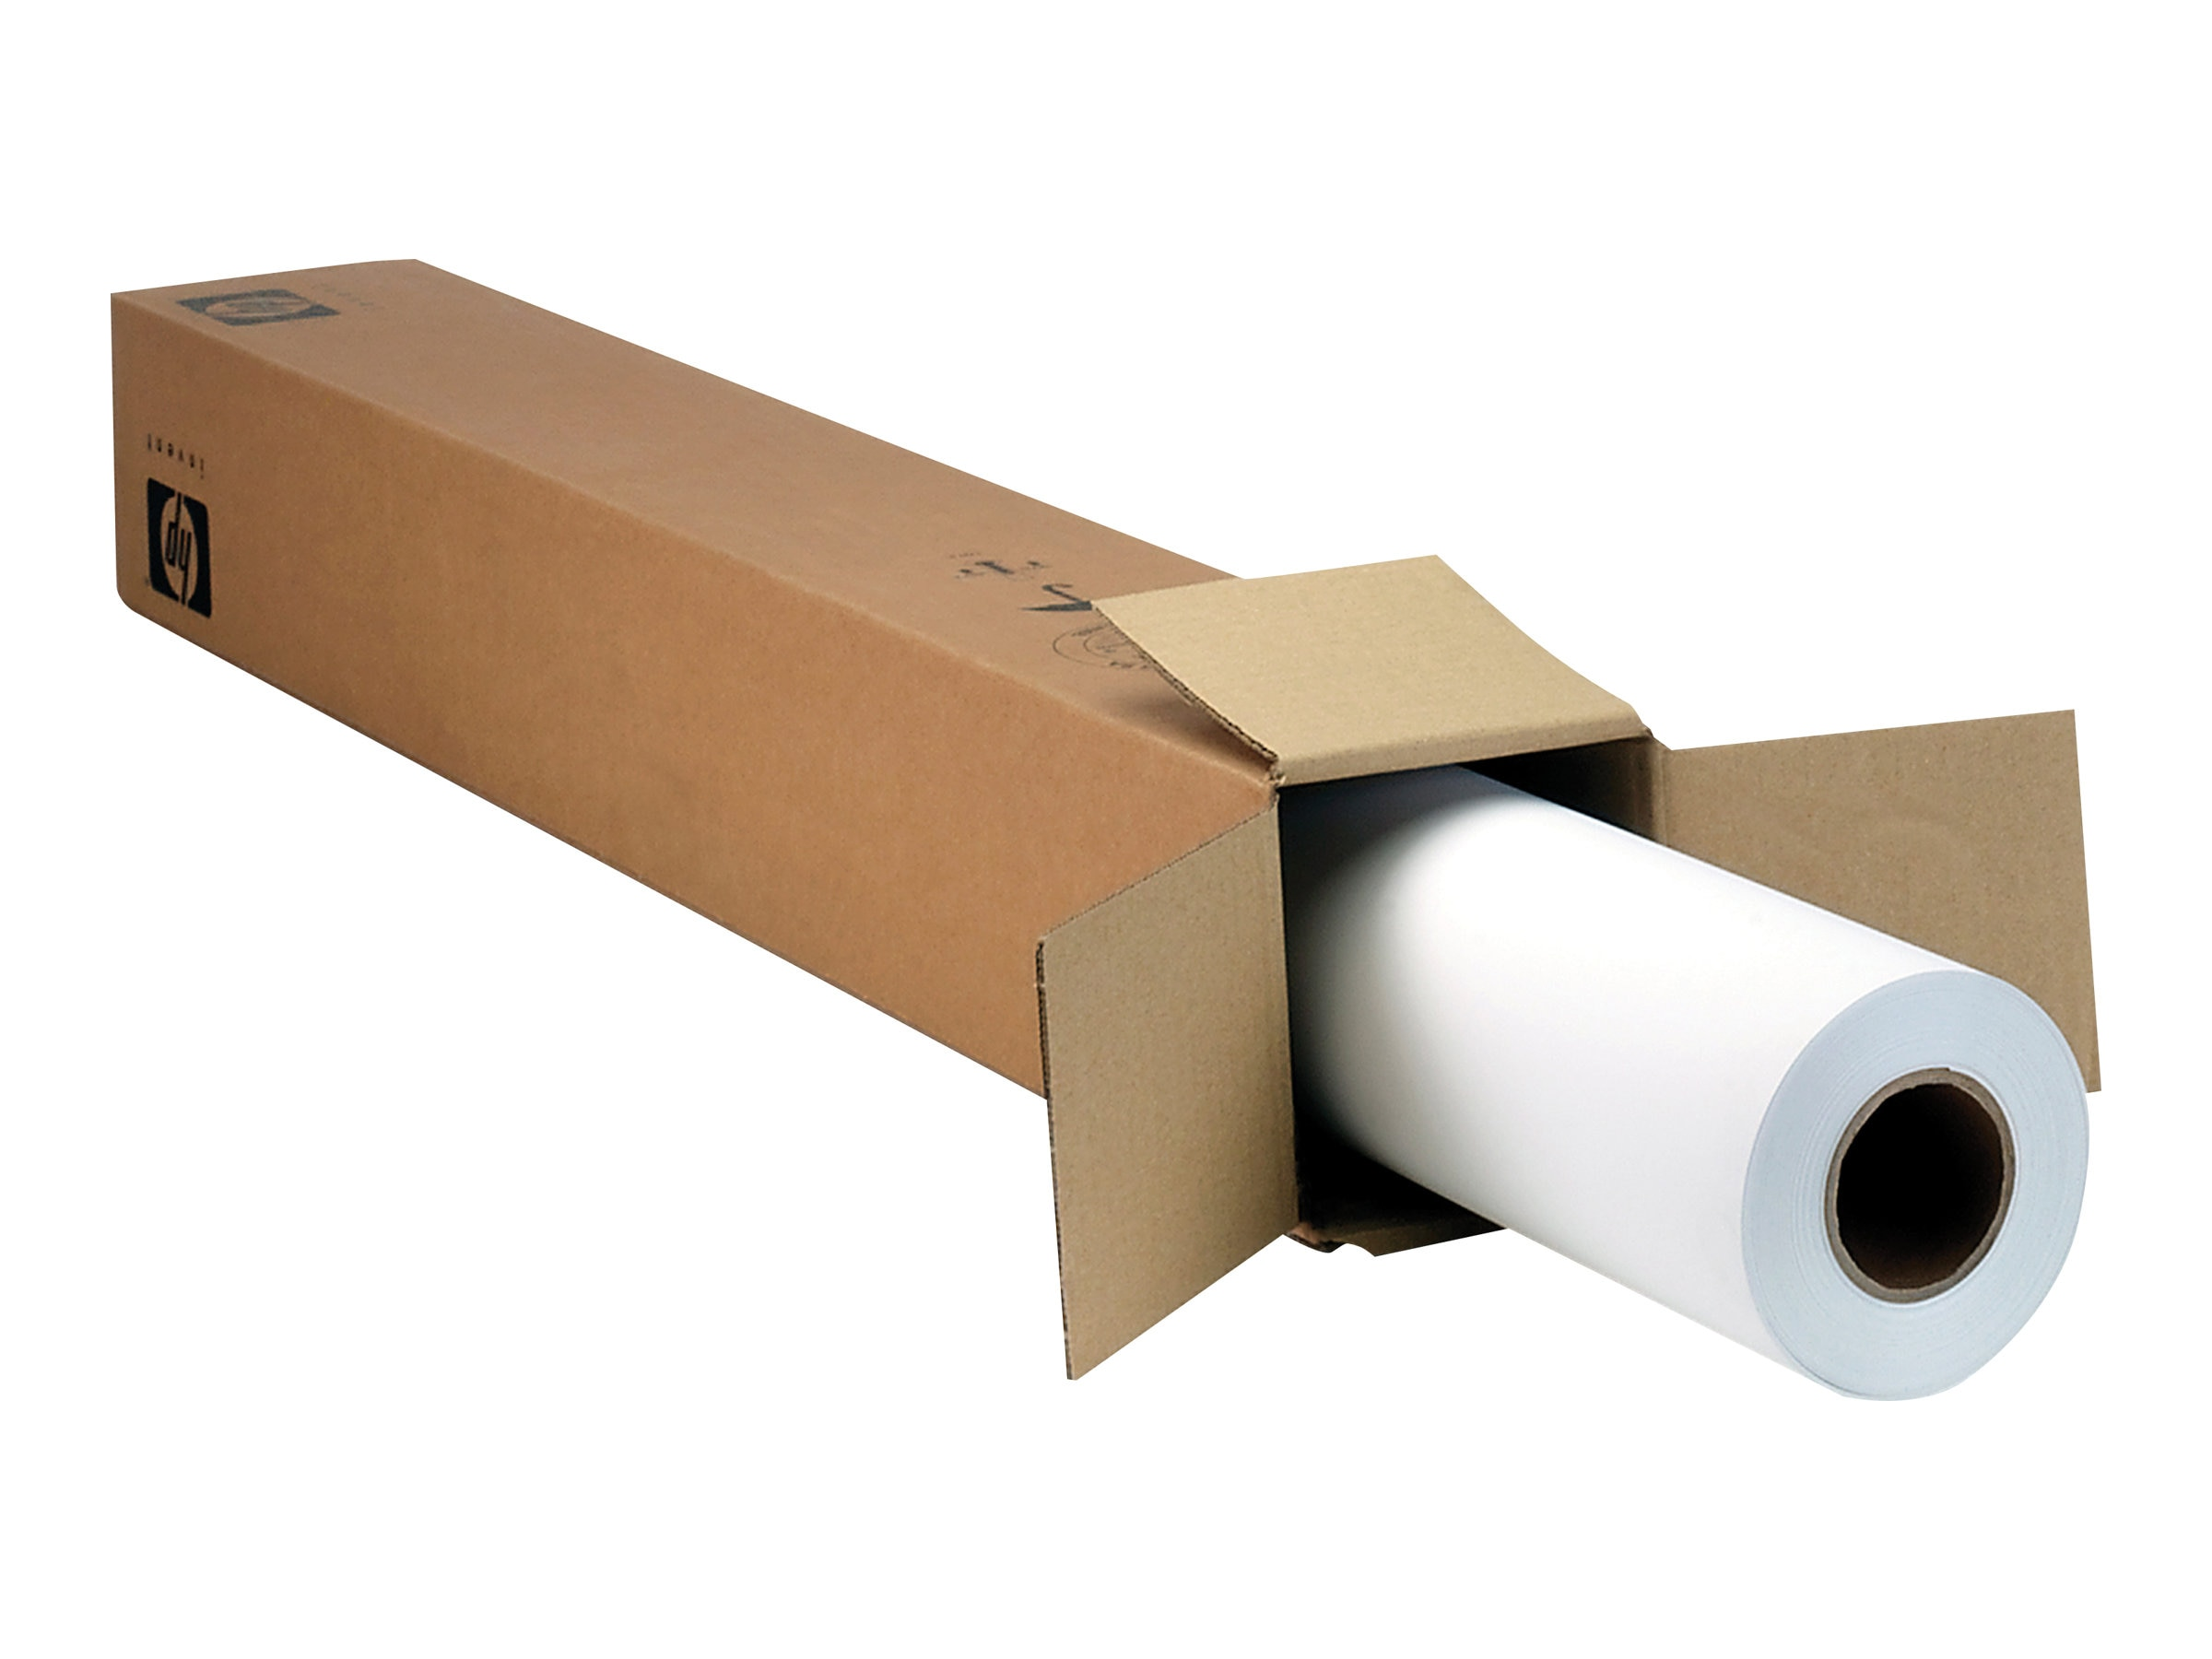 HP 50 x 100' Everyday Matte Polypropylene (2 Rolls), CH026A, 10202407, Paper, Labels & Other Print Media